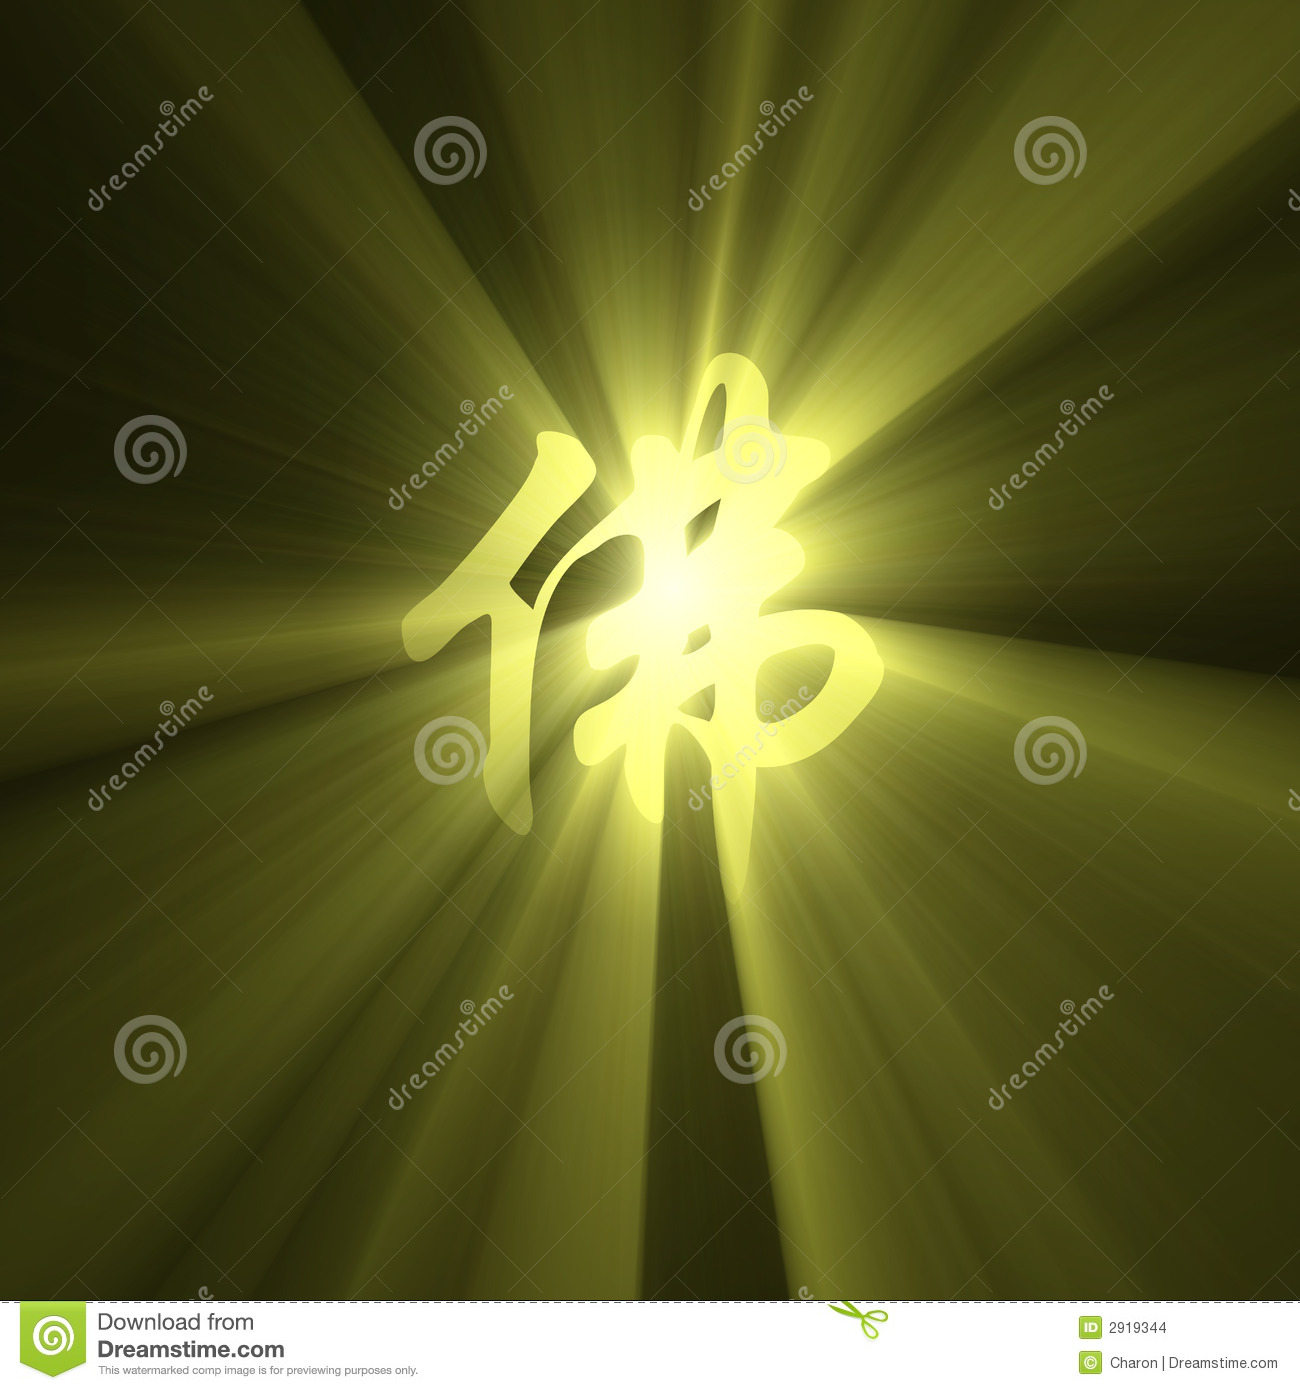 Buddha character sign light flare stock illustration buddha character sign light flare beam concept biocorpaavc Image collections